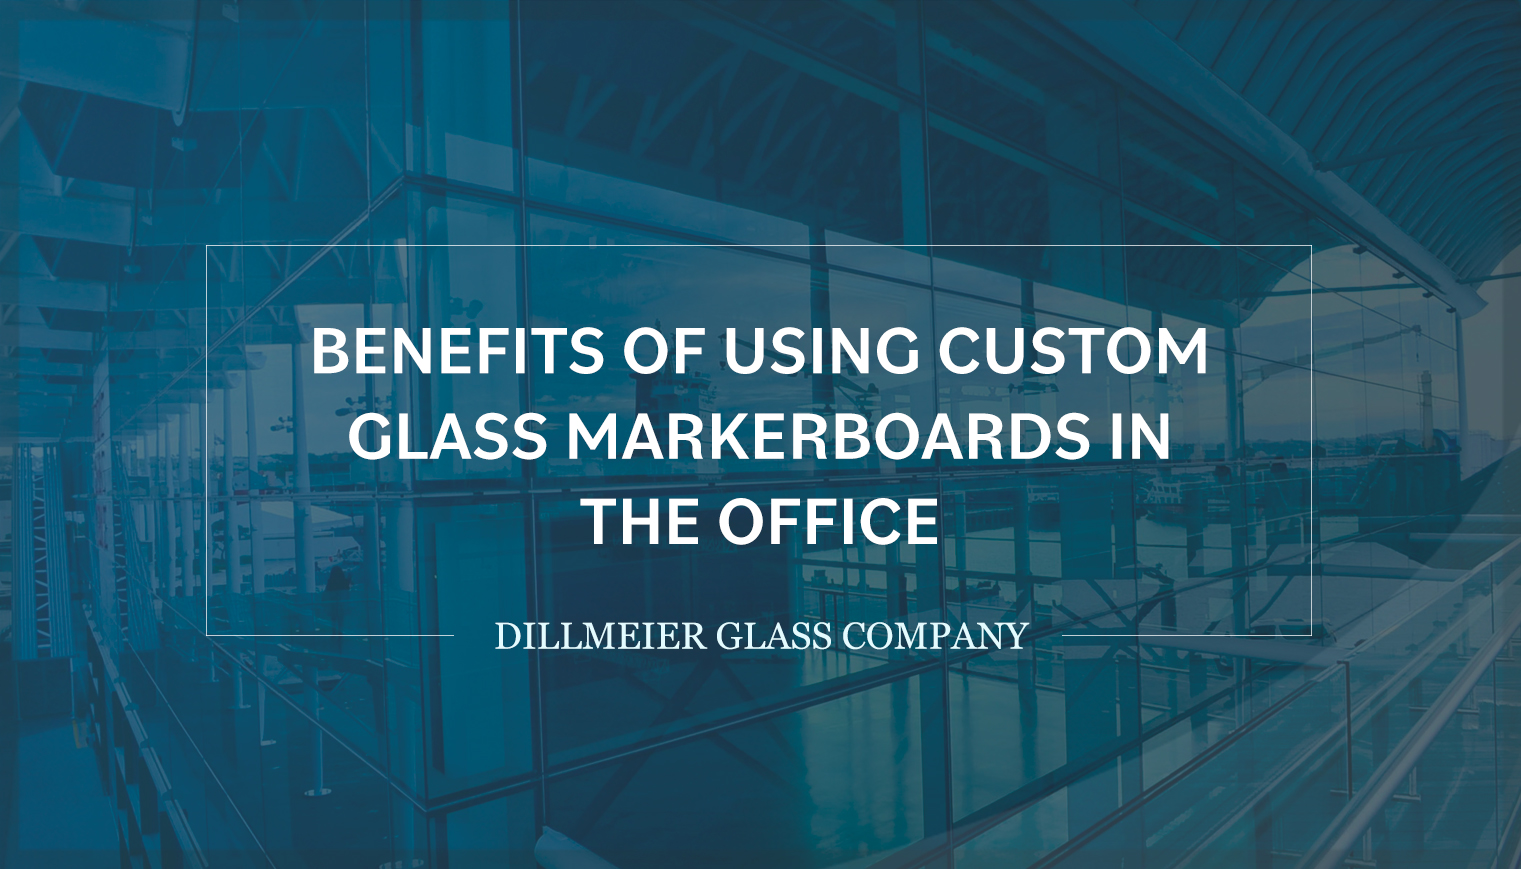 Benefits of Using Custom Glass Markerboards in the Office